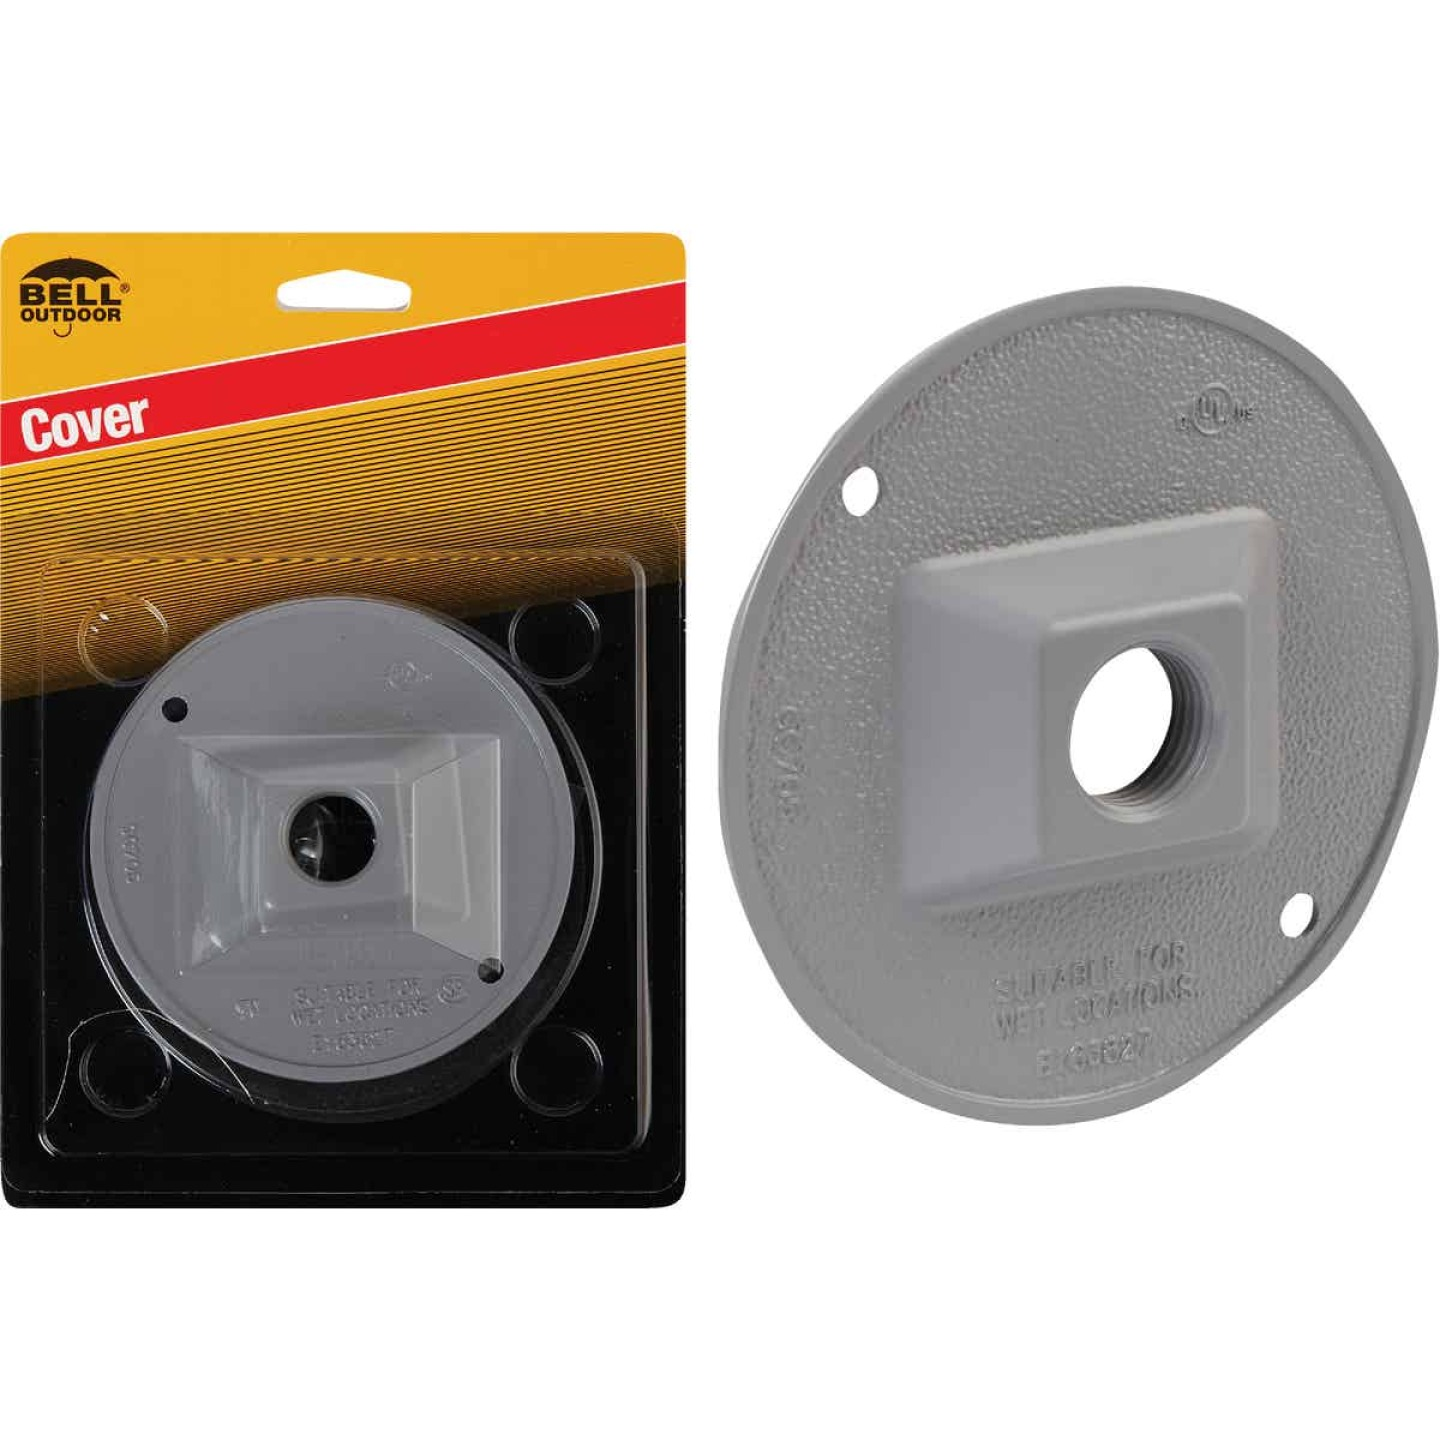 Bell 1-Outlet Round Zinc Gray Cluster Weatherproof Outdoor Electrical Cover, Carded Image 1